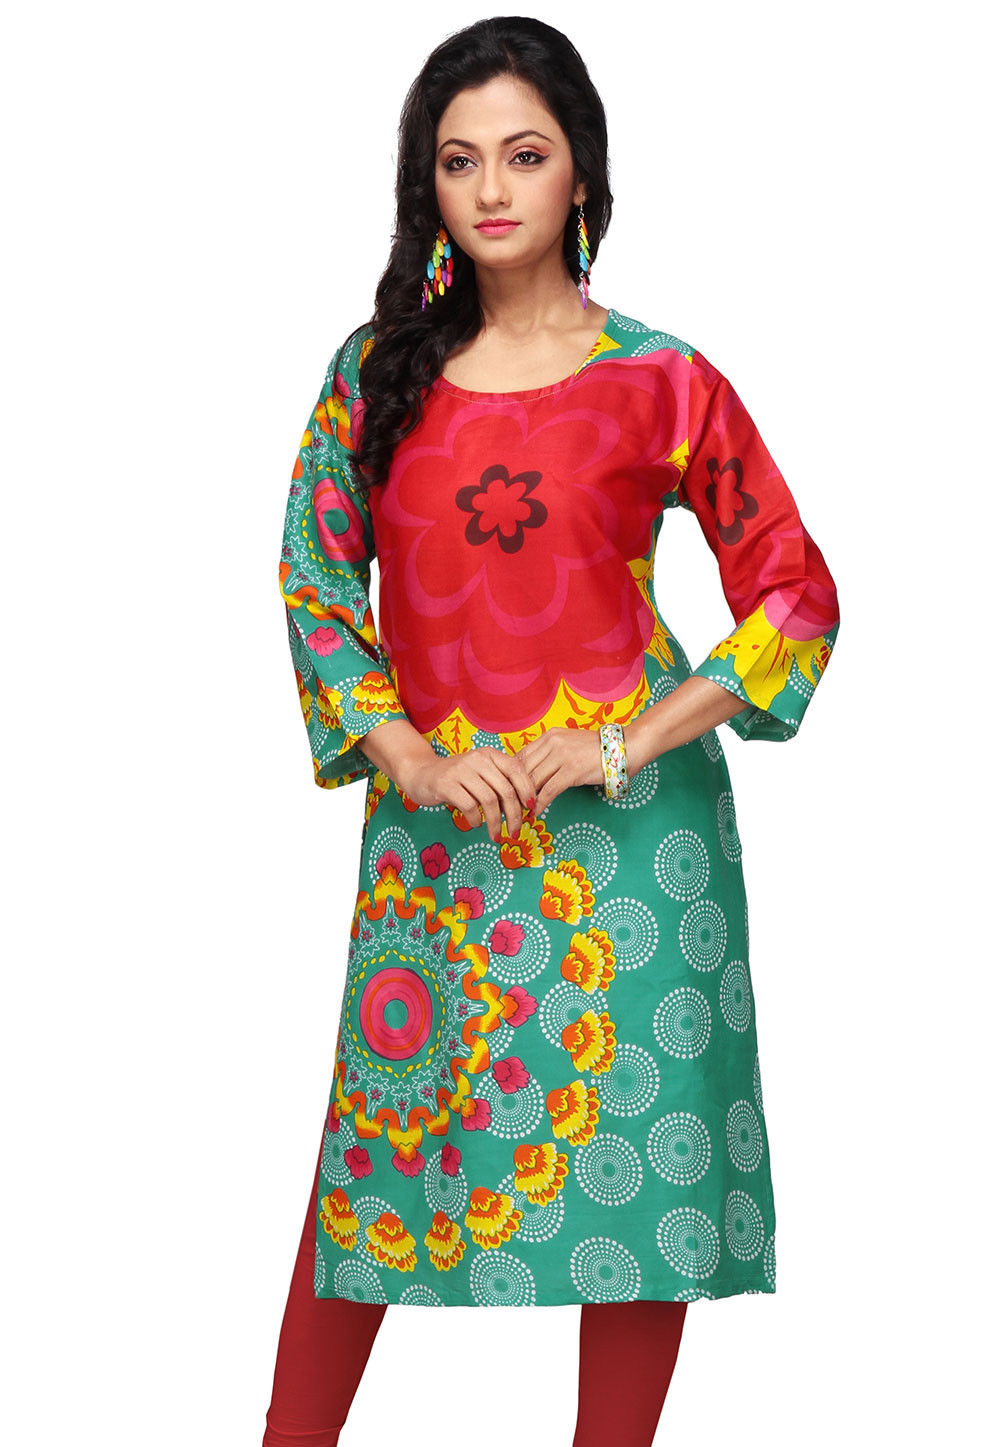 Printed Rayon Long Kurta In Red and Teal Green